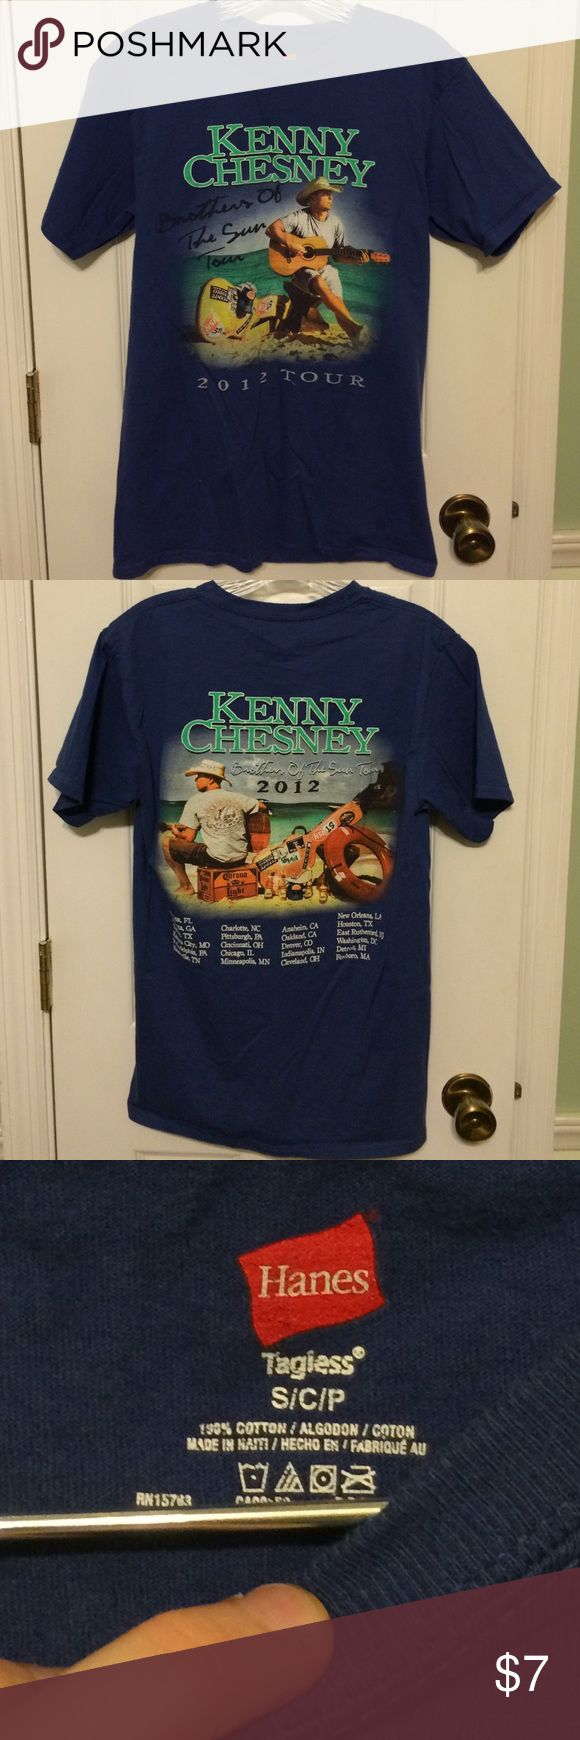 "Kenny Chesney Concert Tee This is a size Small Kenny Chesney concert tshirt from his 2012 ""Brothers of The Sun"" Tour!! It's is beautiful condition and has tour dates listed on the back! No holes, stains, or tears! Hanes Tops Tees - Short Sleeve"